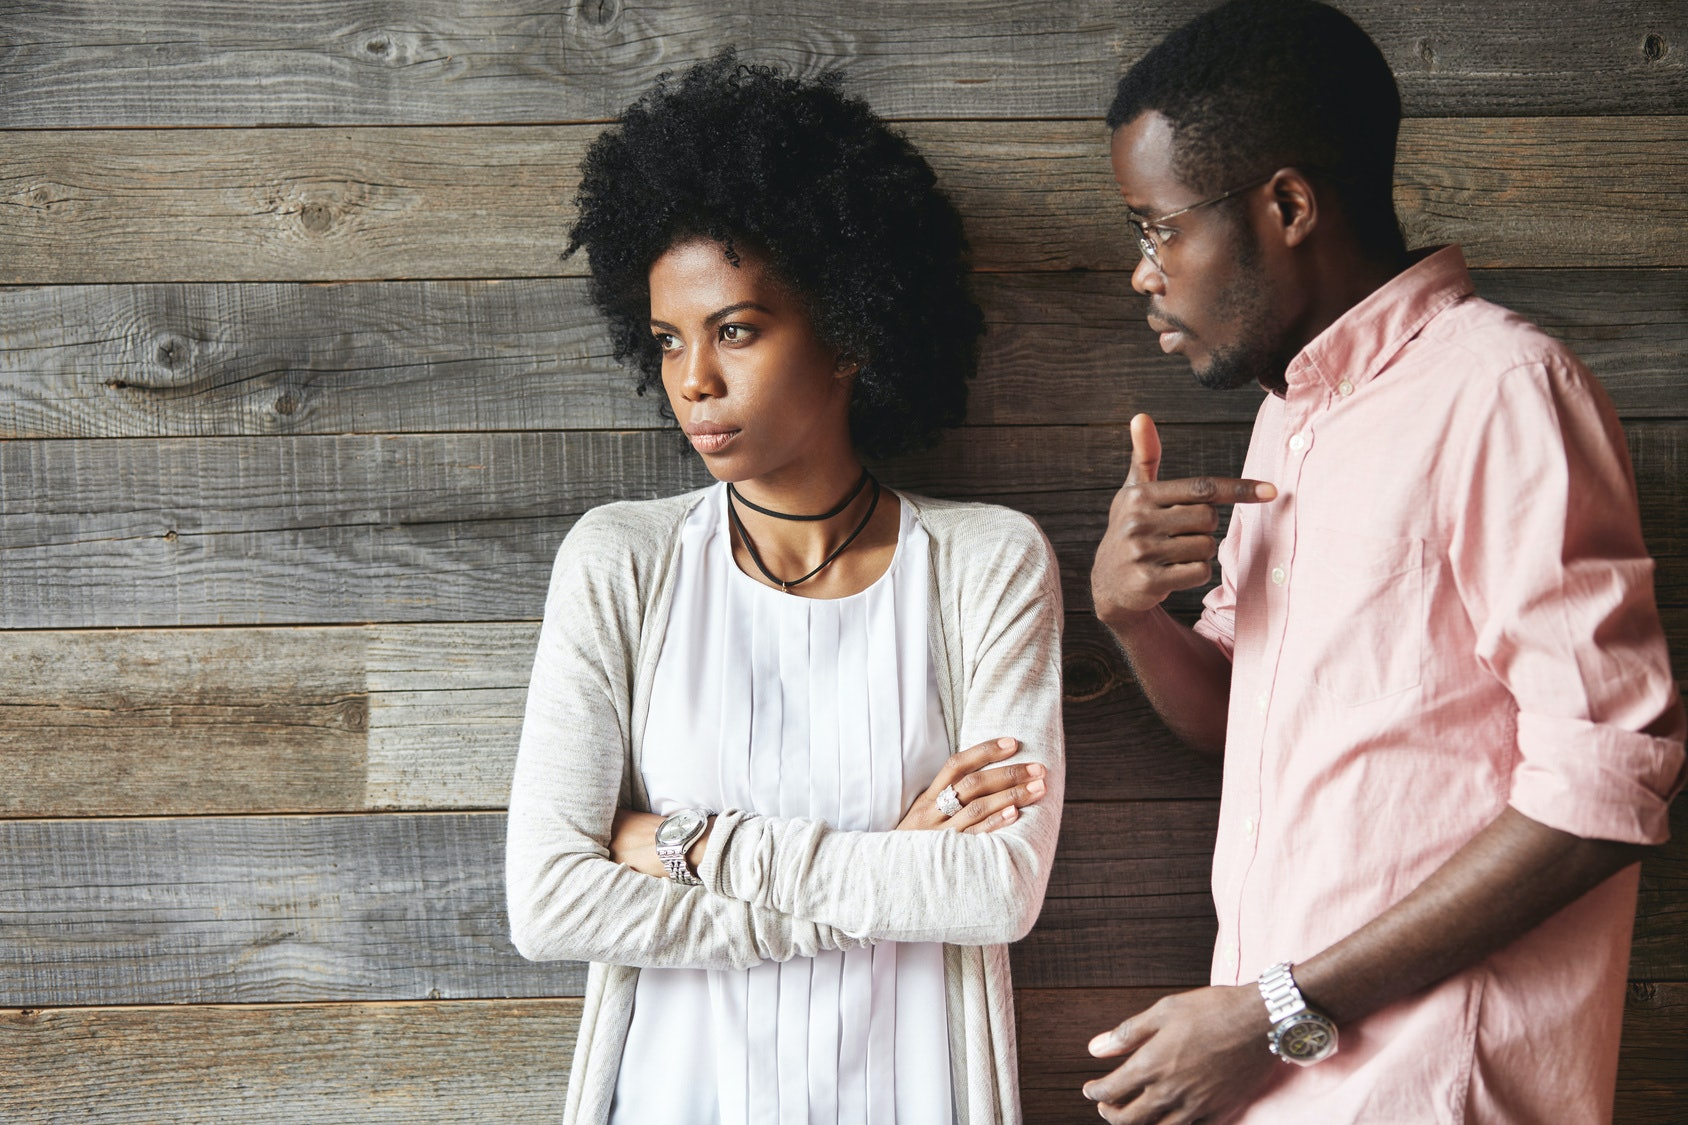 Relationships exhausting you may be why